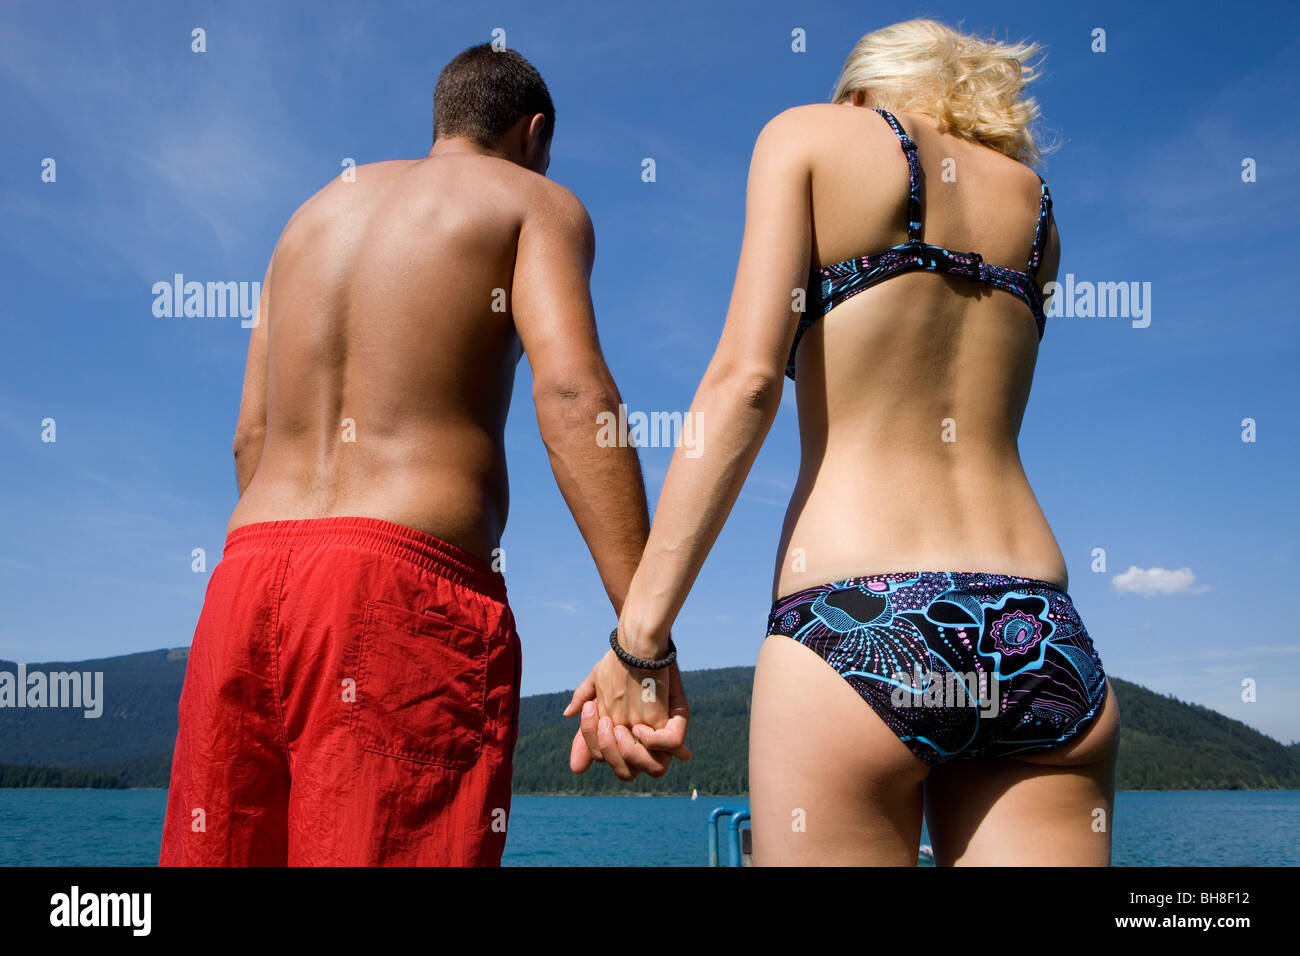 A couple holding hands by a lake - Stock Image